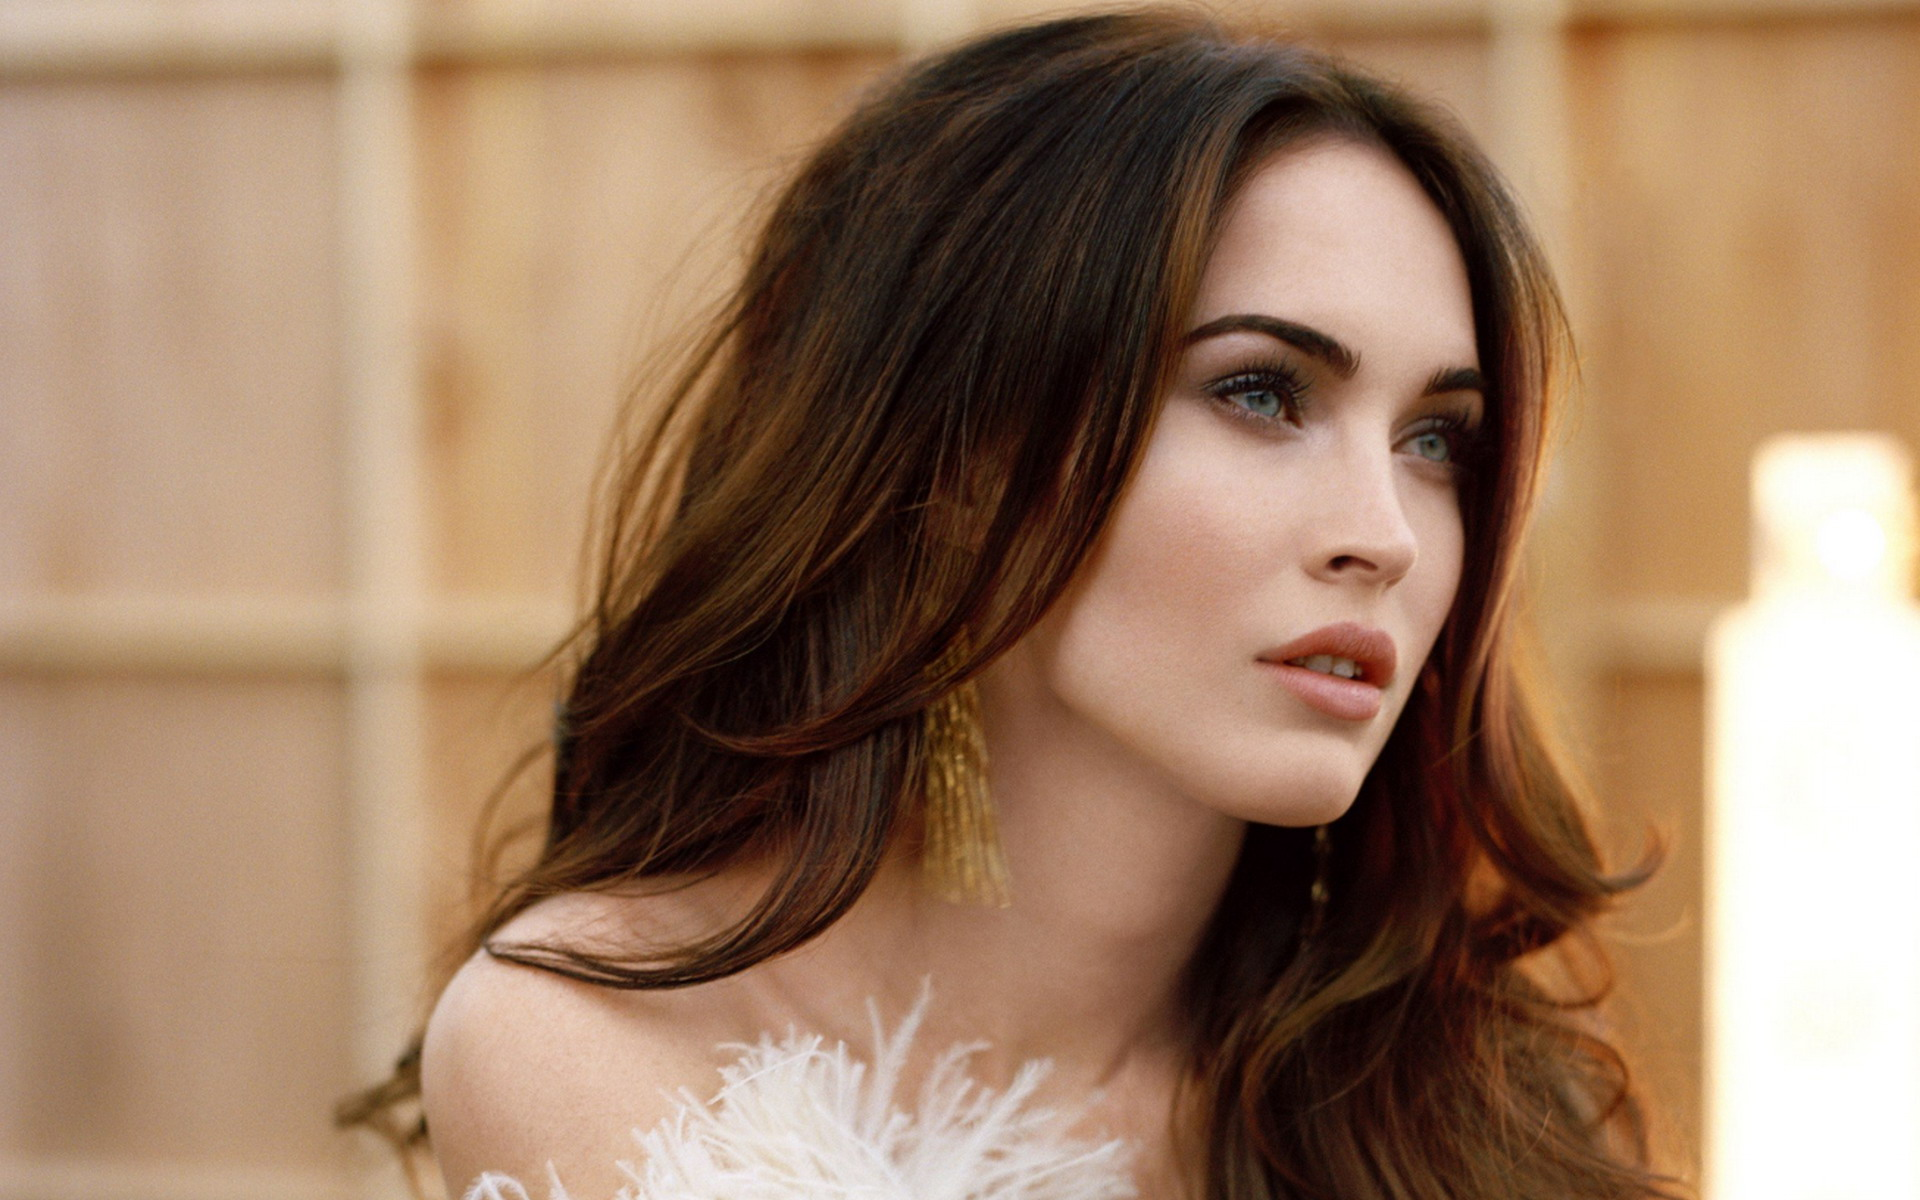 Excellent Megan Fox Wallpaper: Extraordinary Beautiful Megan Fox Wallpaper 1920x1200px